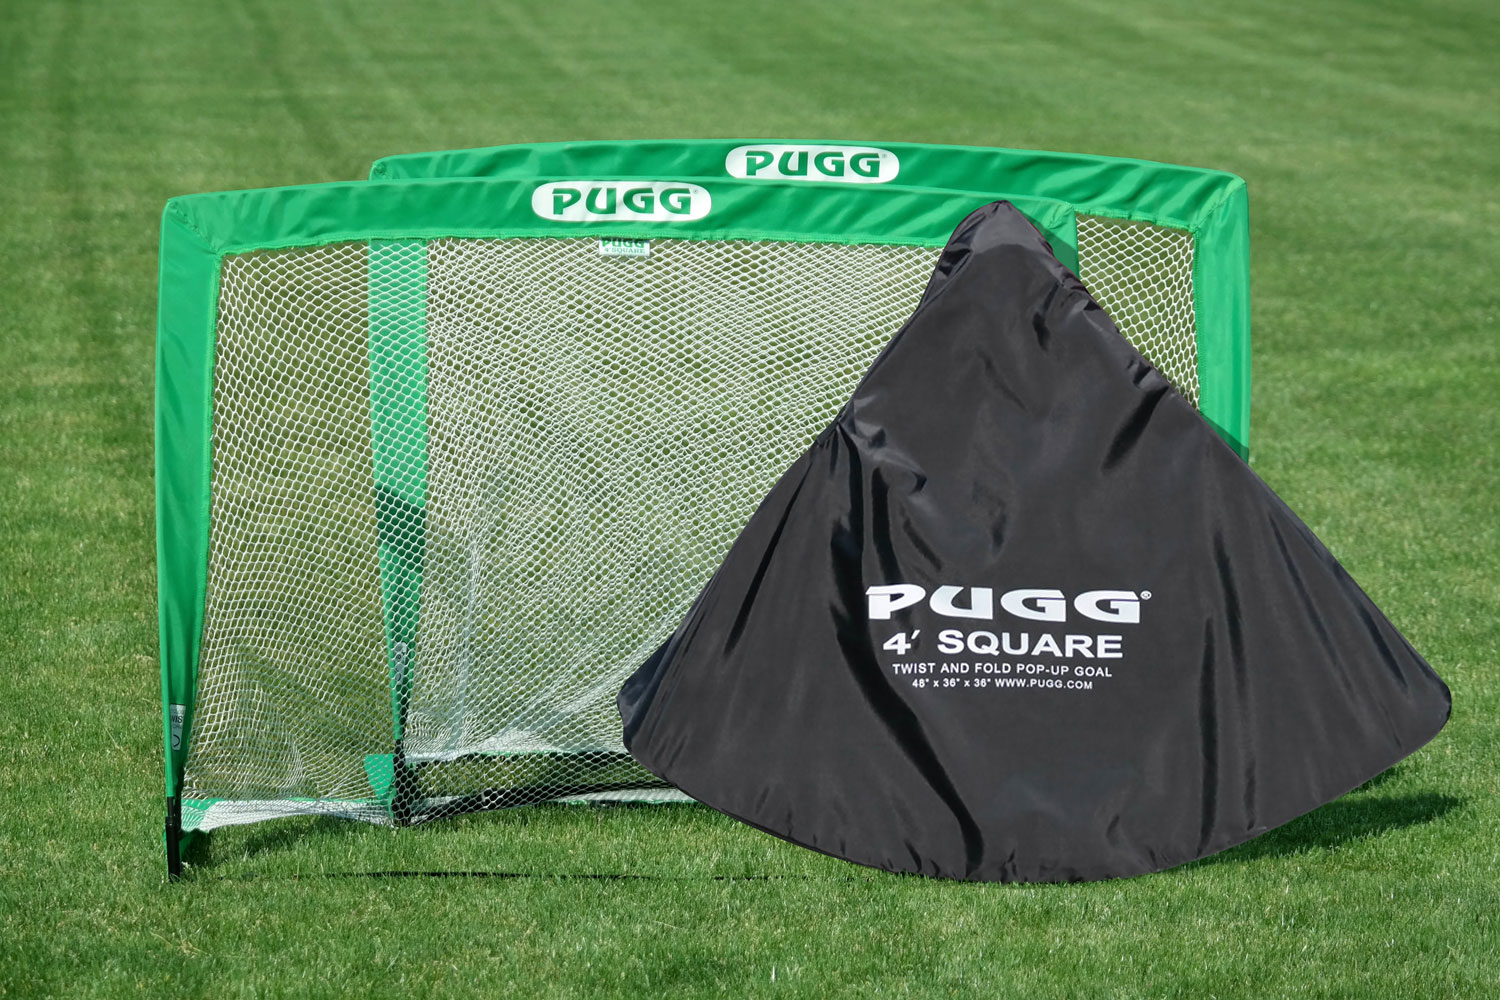 Pugg U90 4 Footer Pop-Up (Pair)